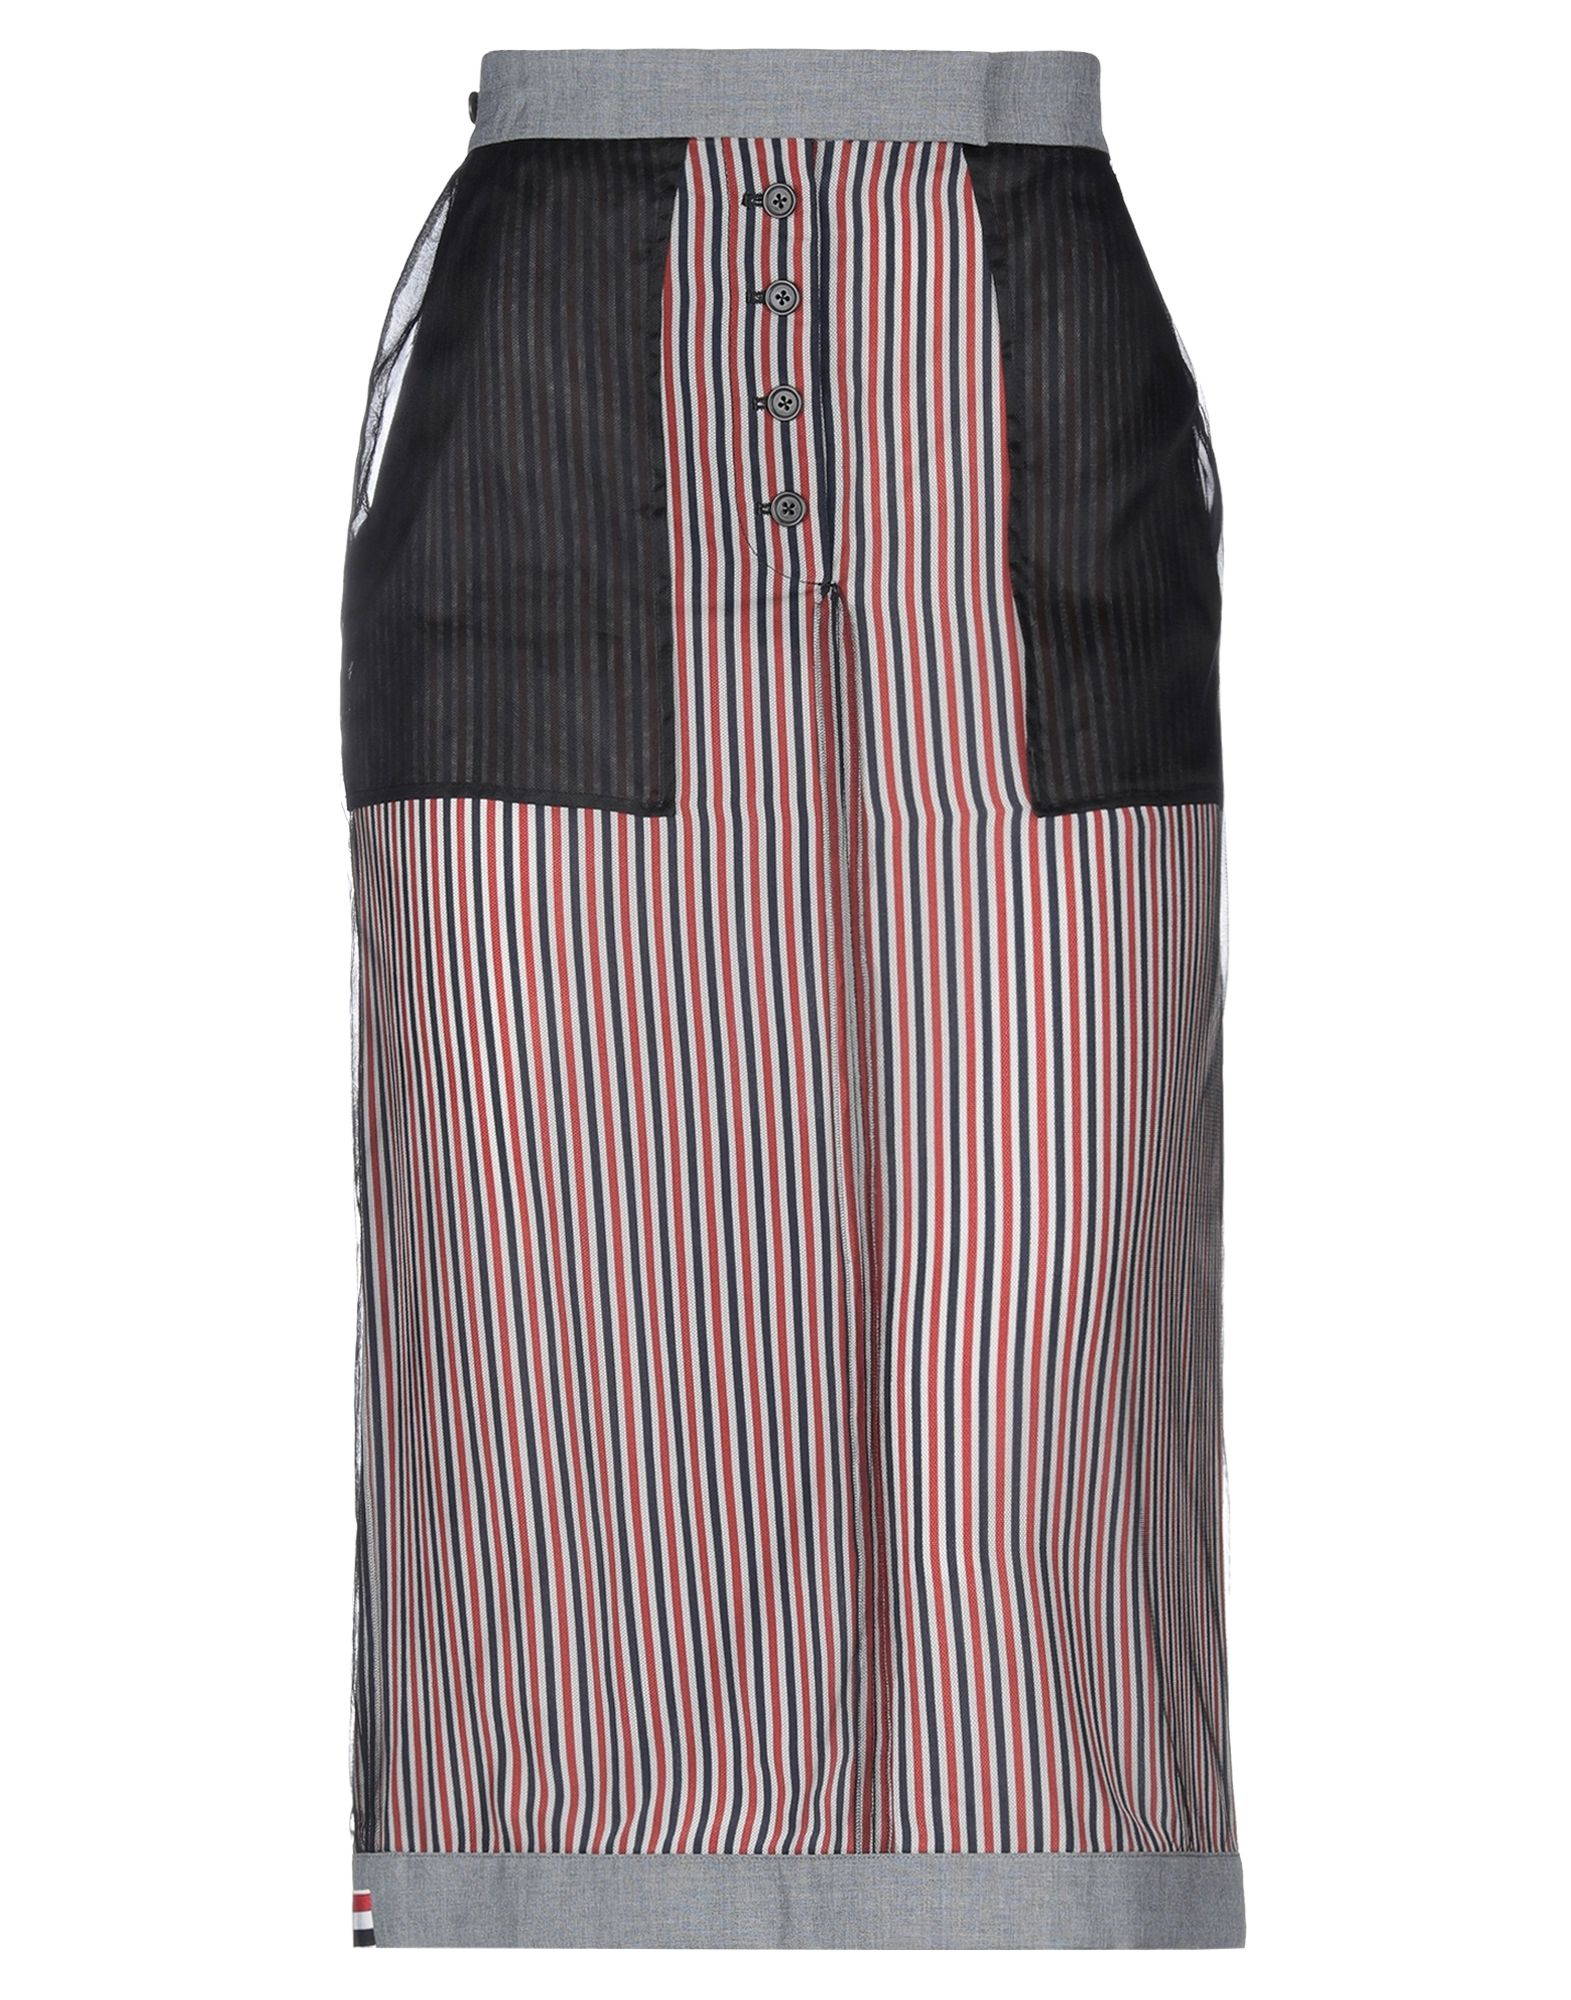 THOM BROWNE 3/4 length skirts. plain weave, tulle, contrasting applications, stripes, multipockets, hook-and-bar, button fly closure, fully lined, rear slit. 50% Wool, 50% Polyester, Silk, Polyamide